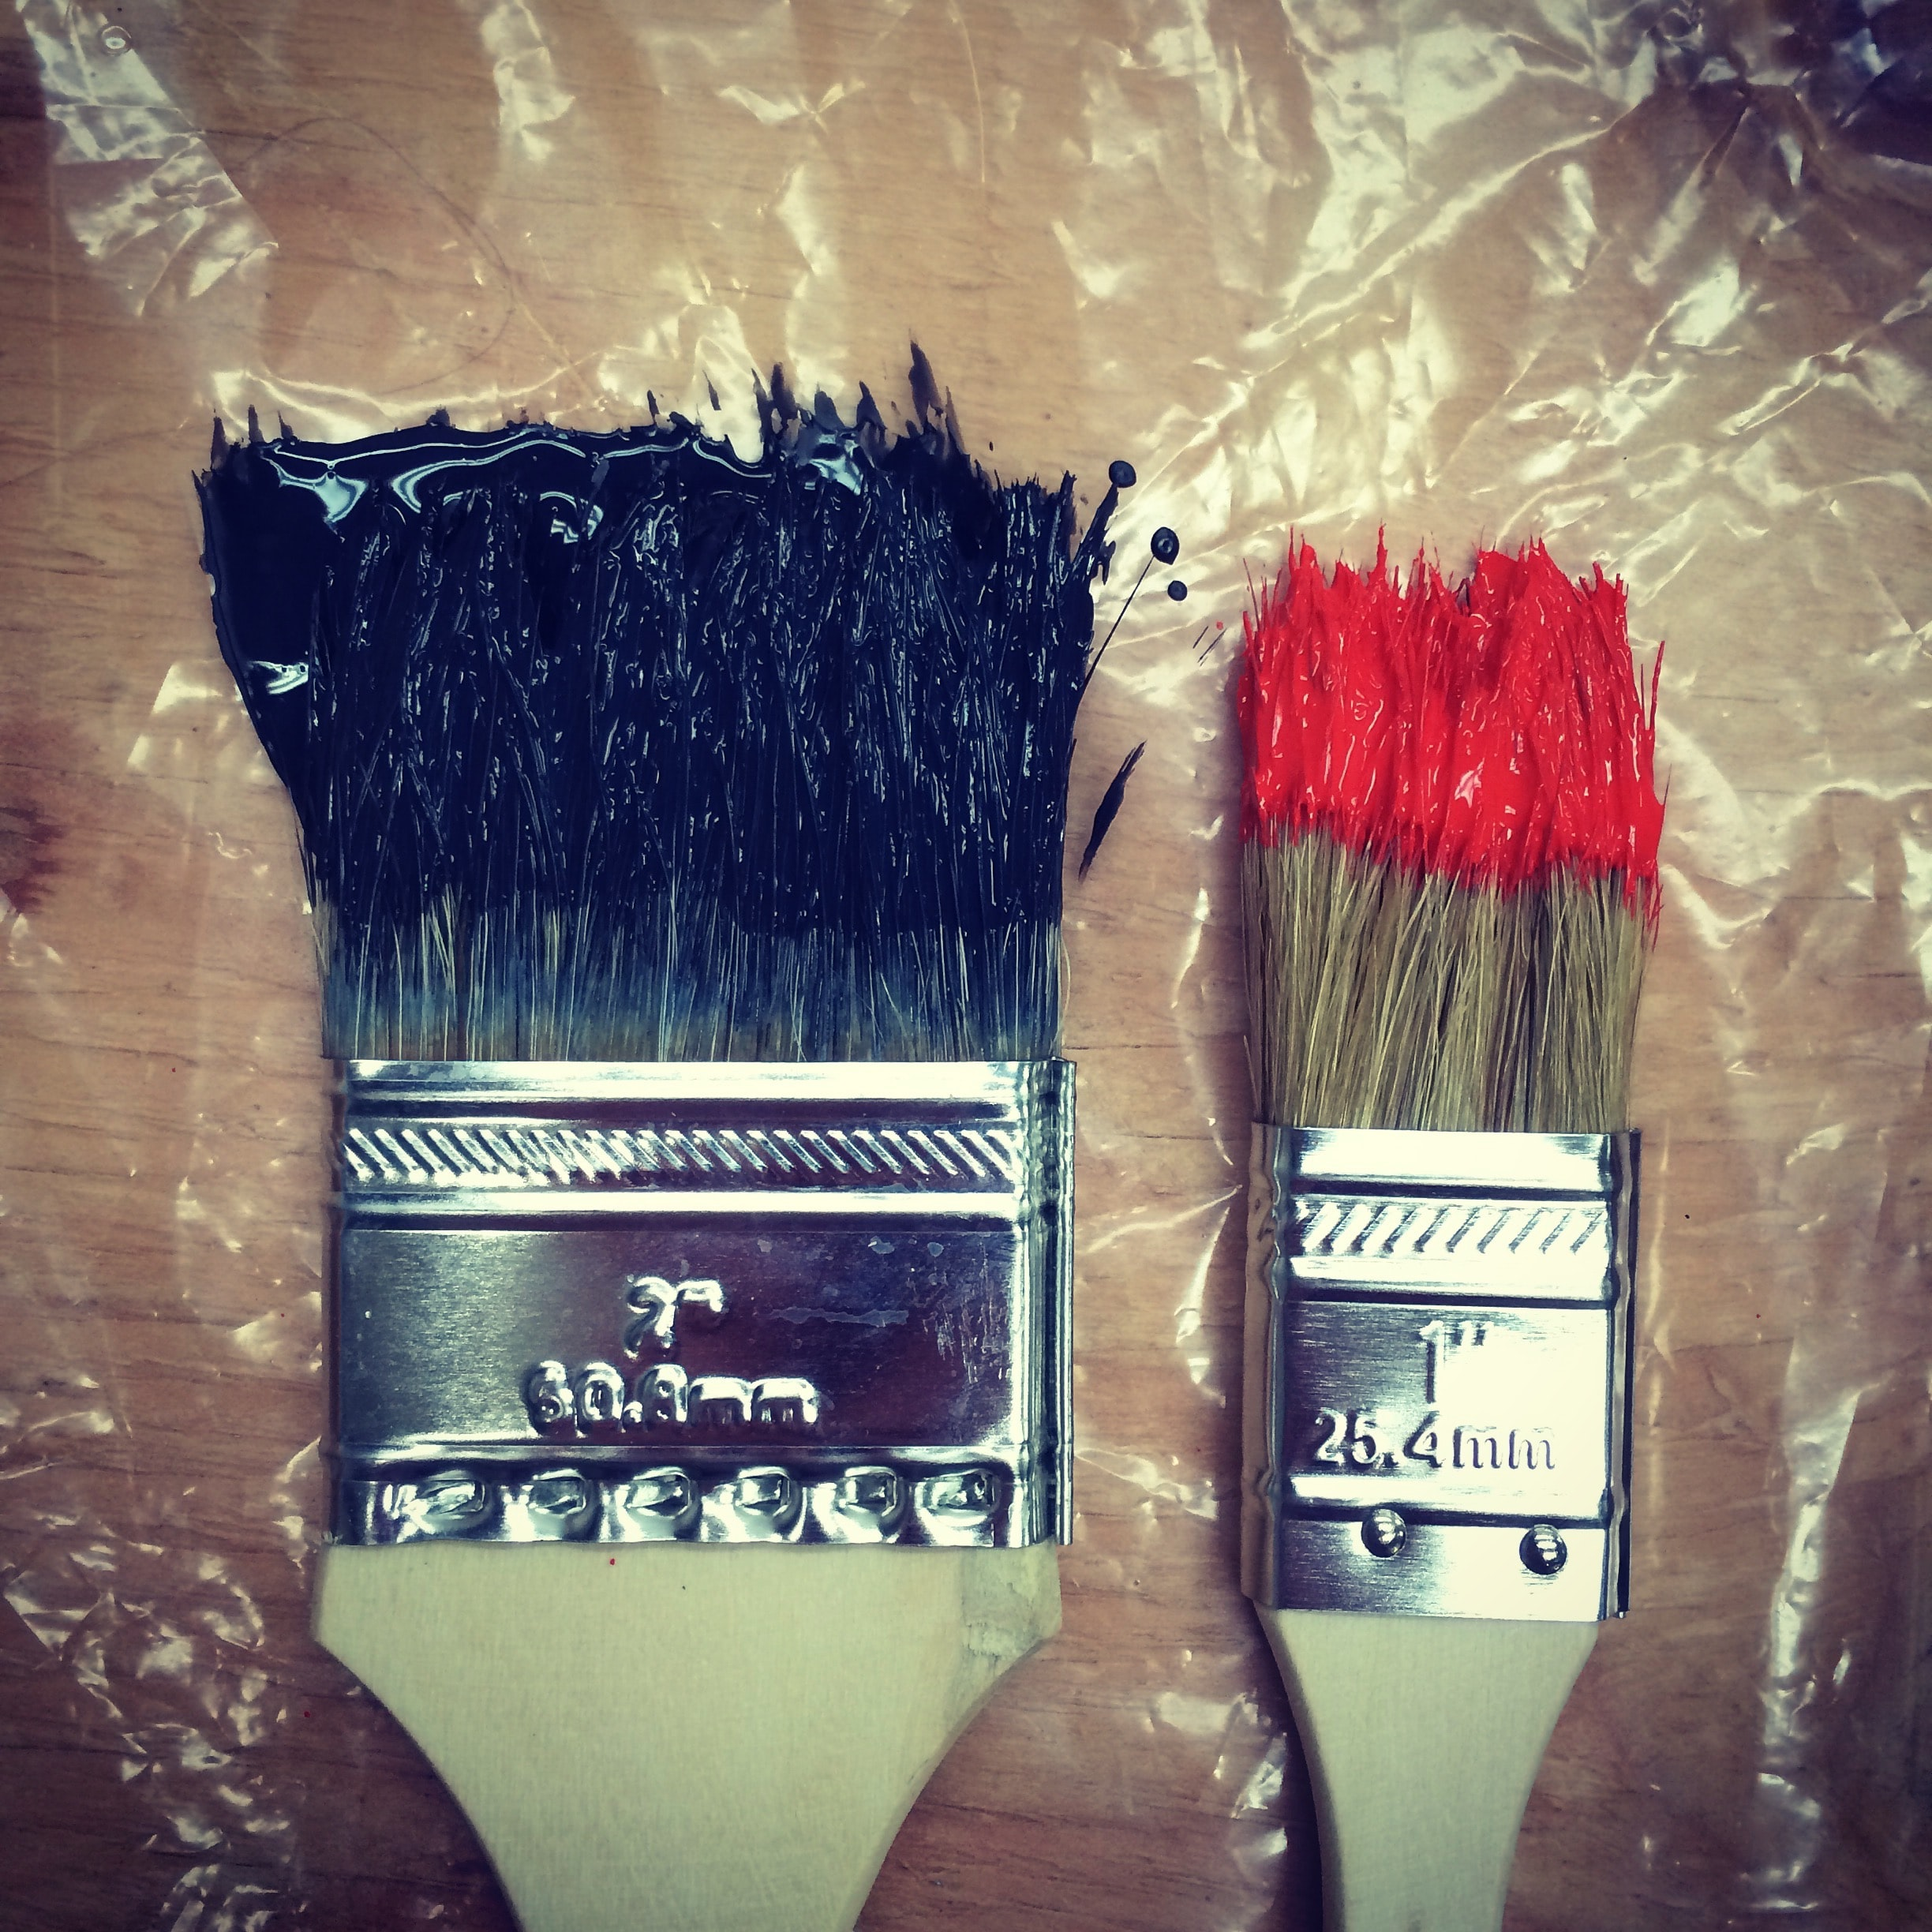 Two paintbrushes of varying size dipped in paint lying on table, California College of the Arts